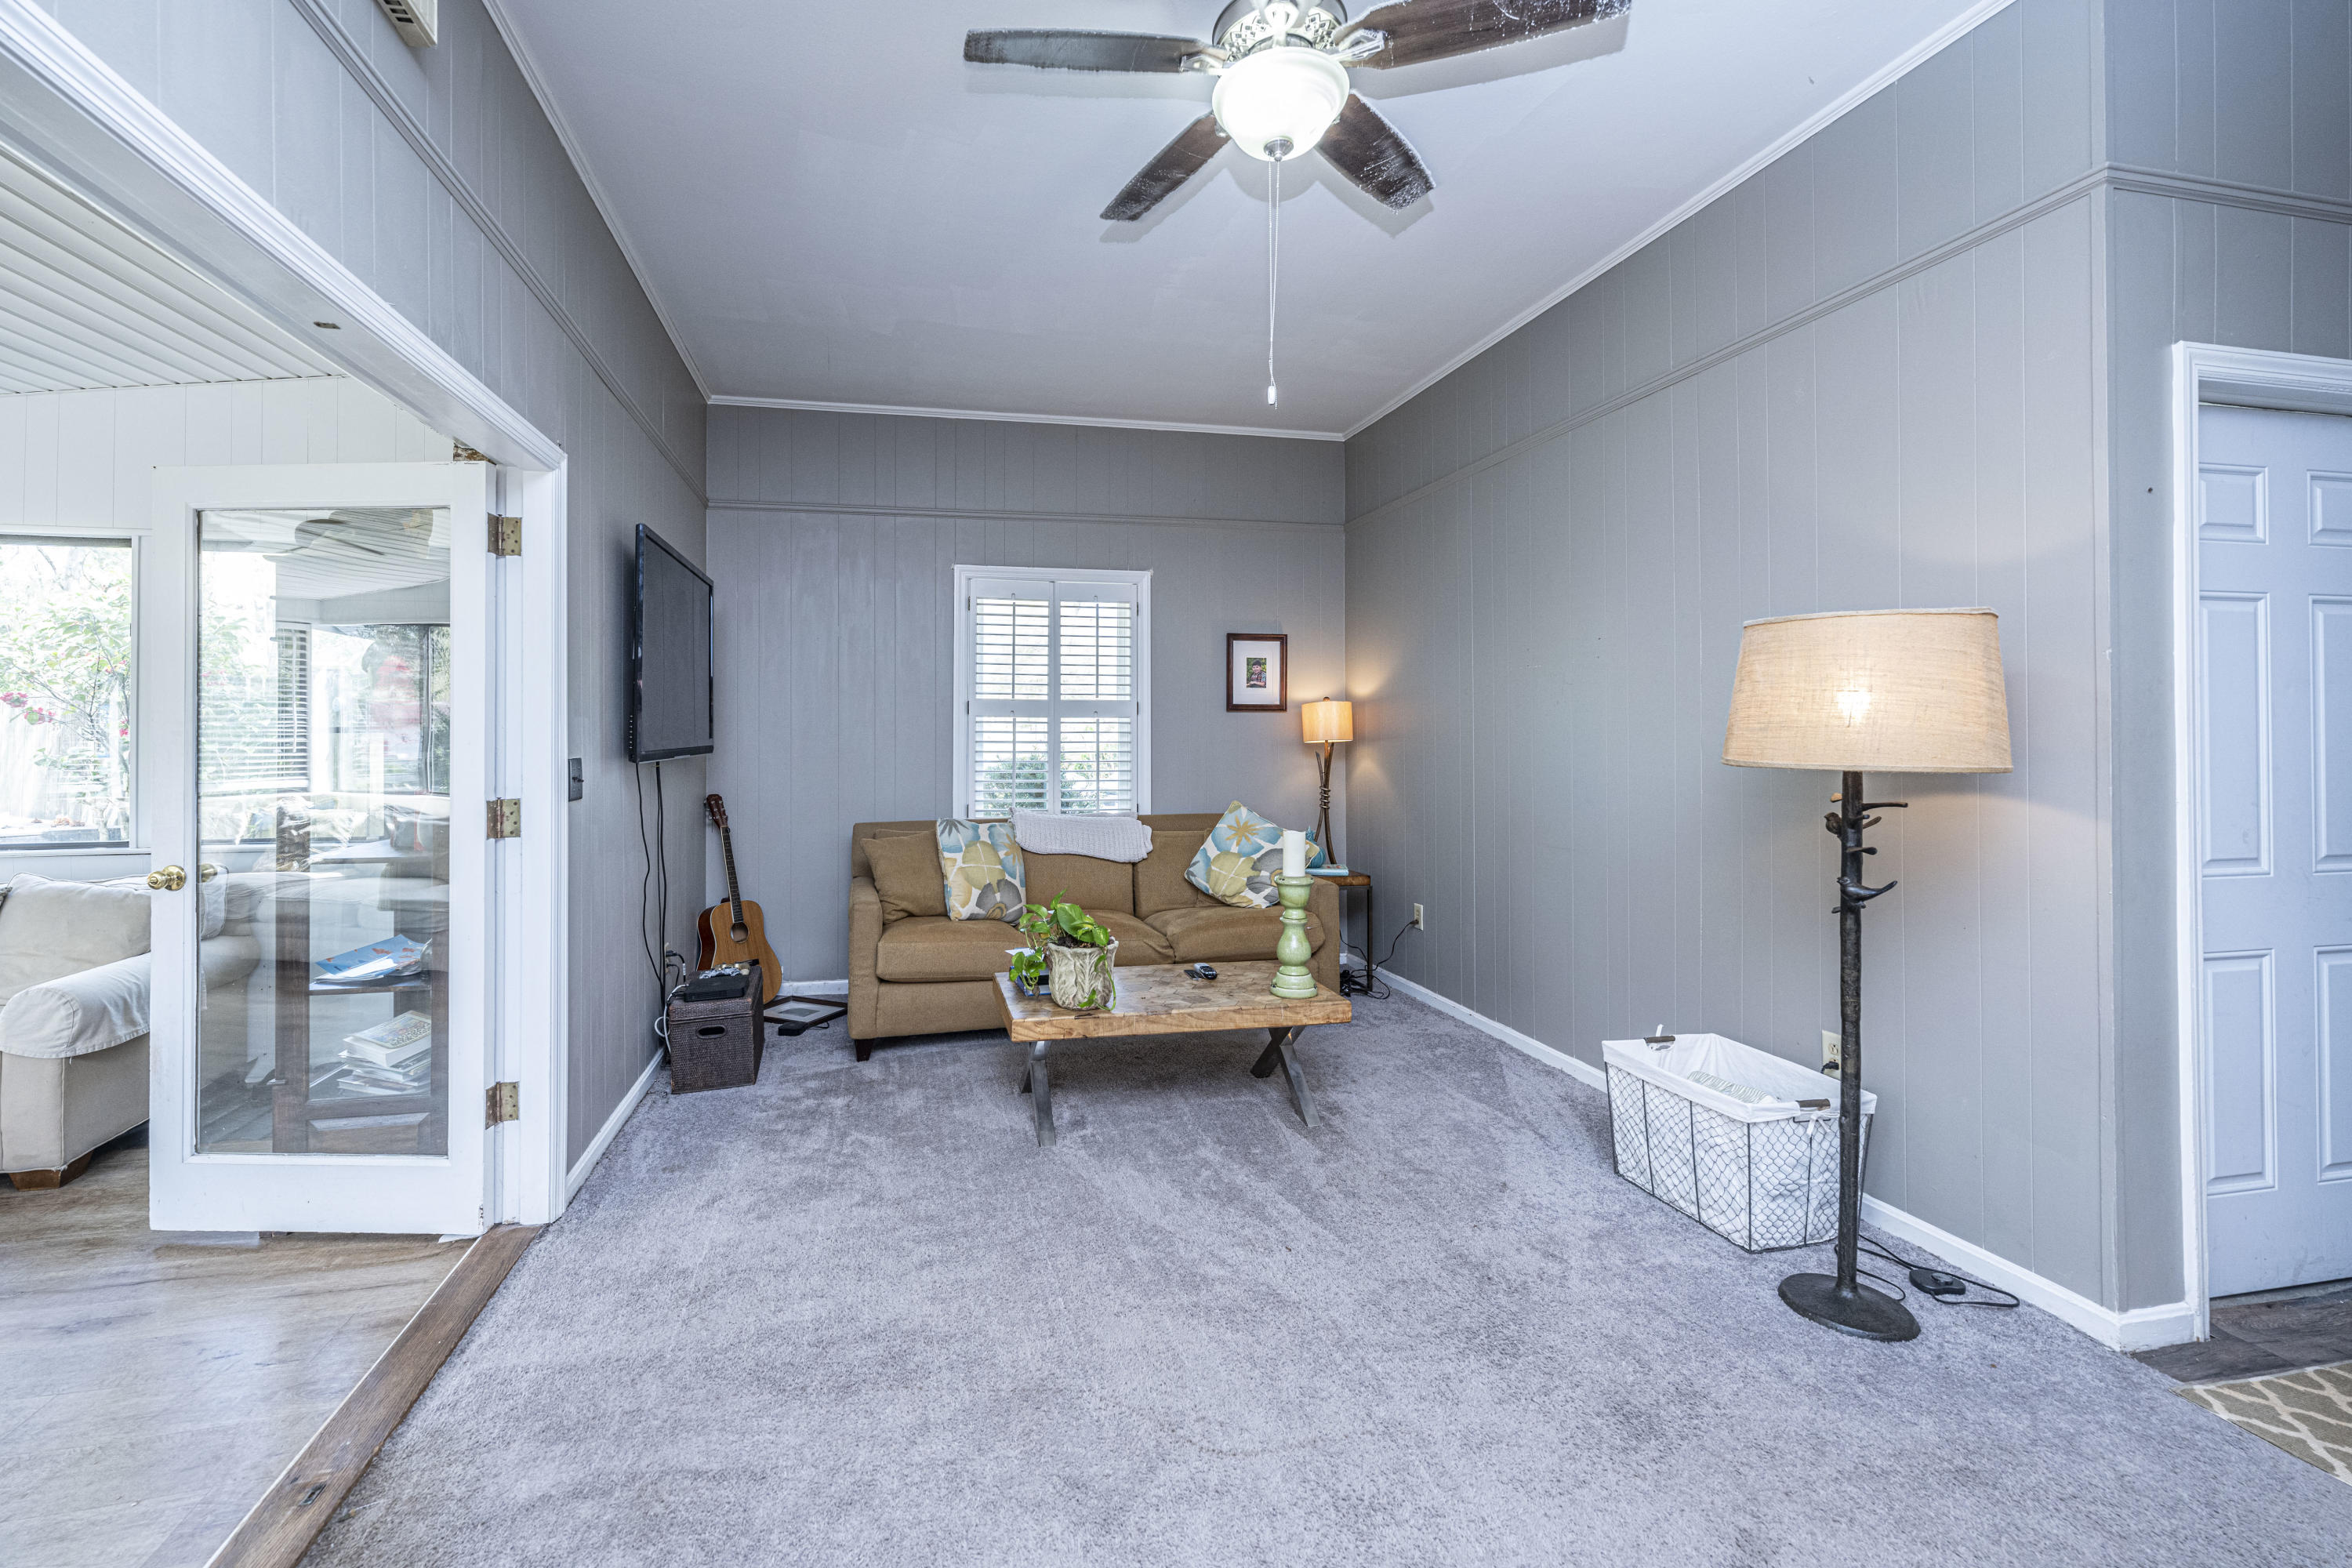 Stiles Point Homes For Sale - 775 Sparrow, Charleston, SC - 16